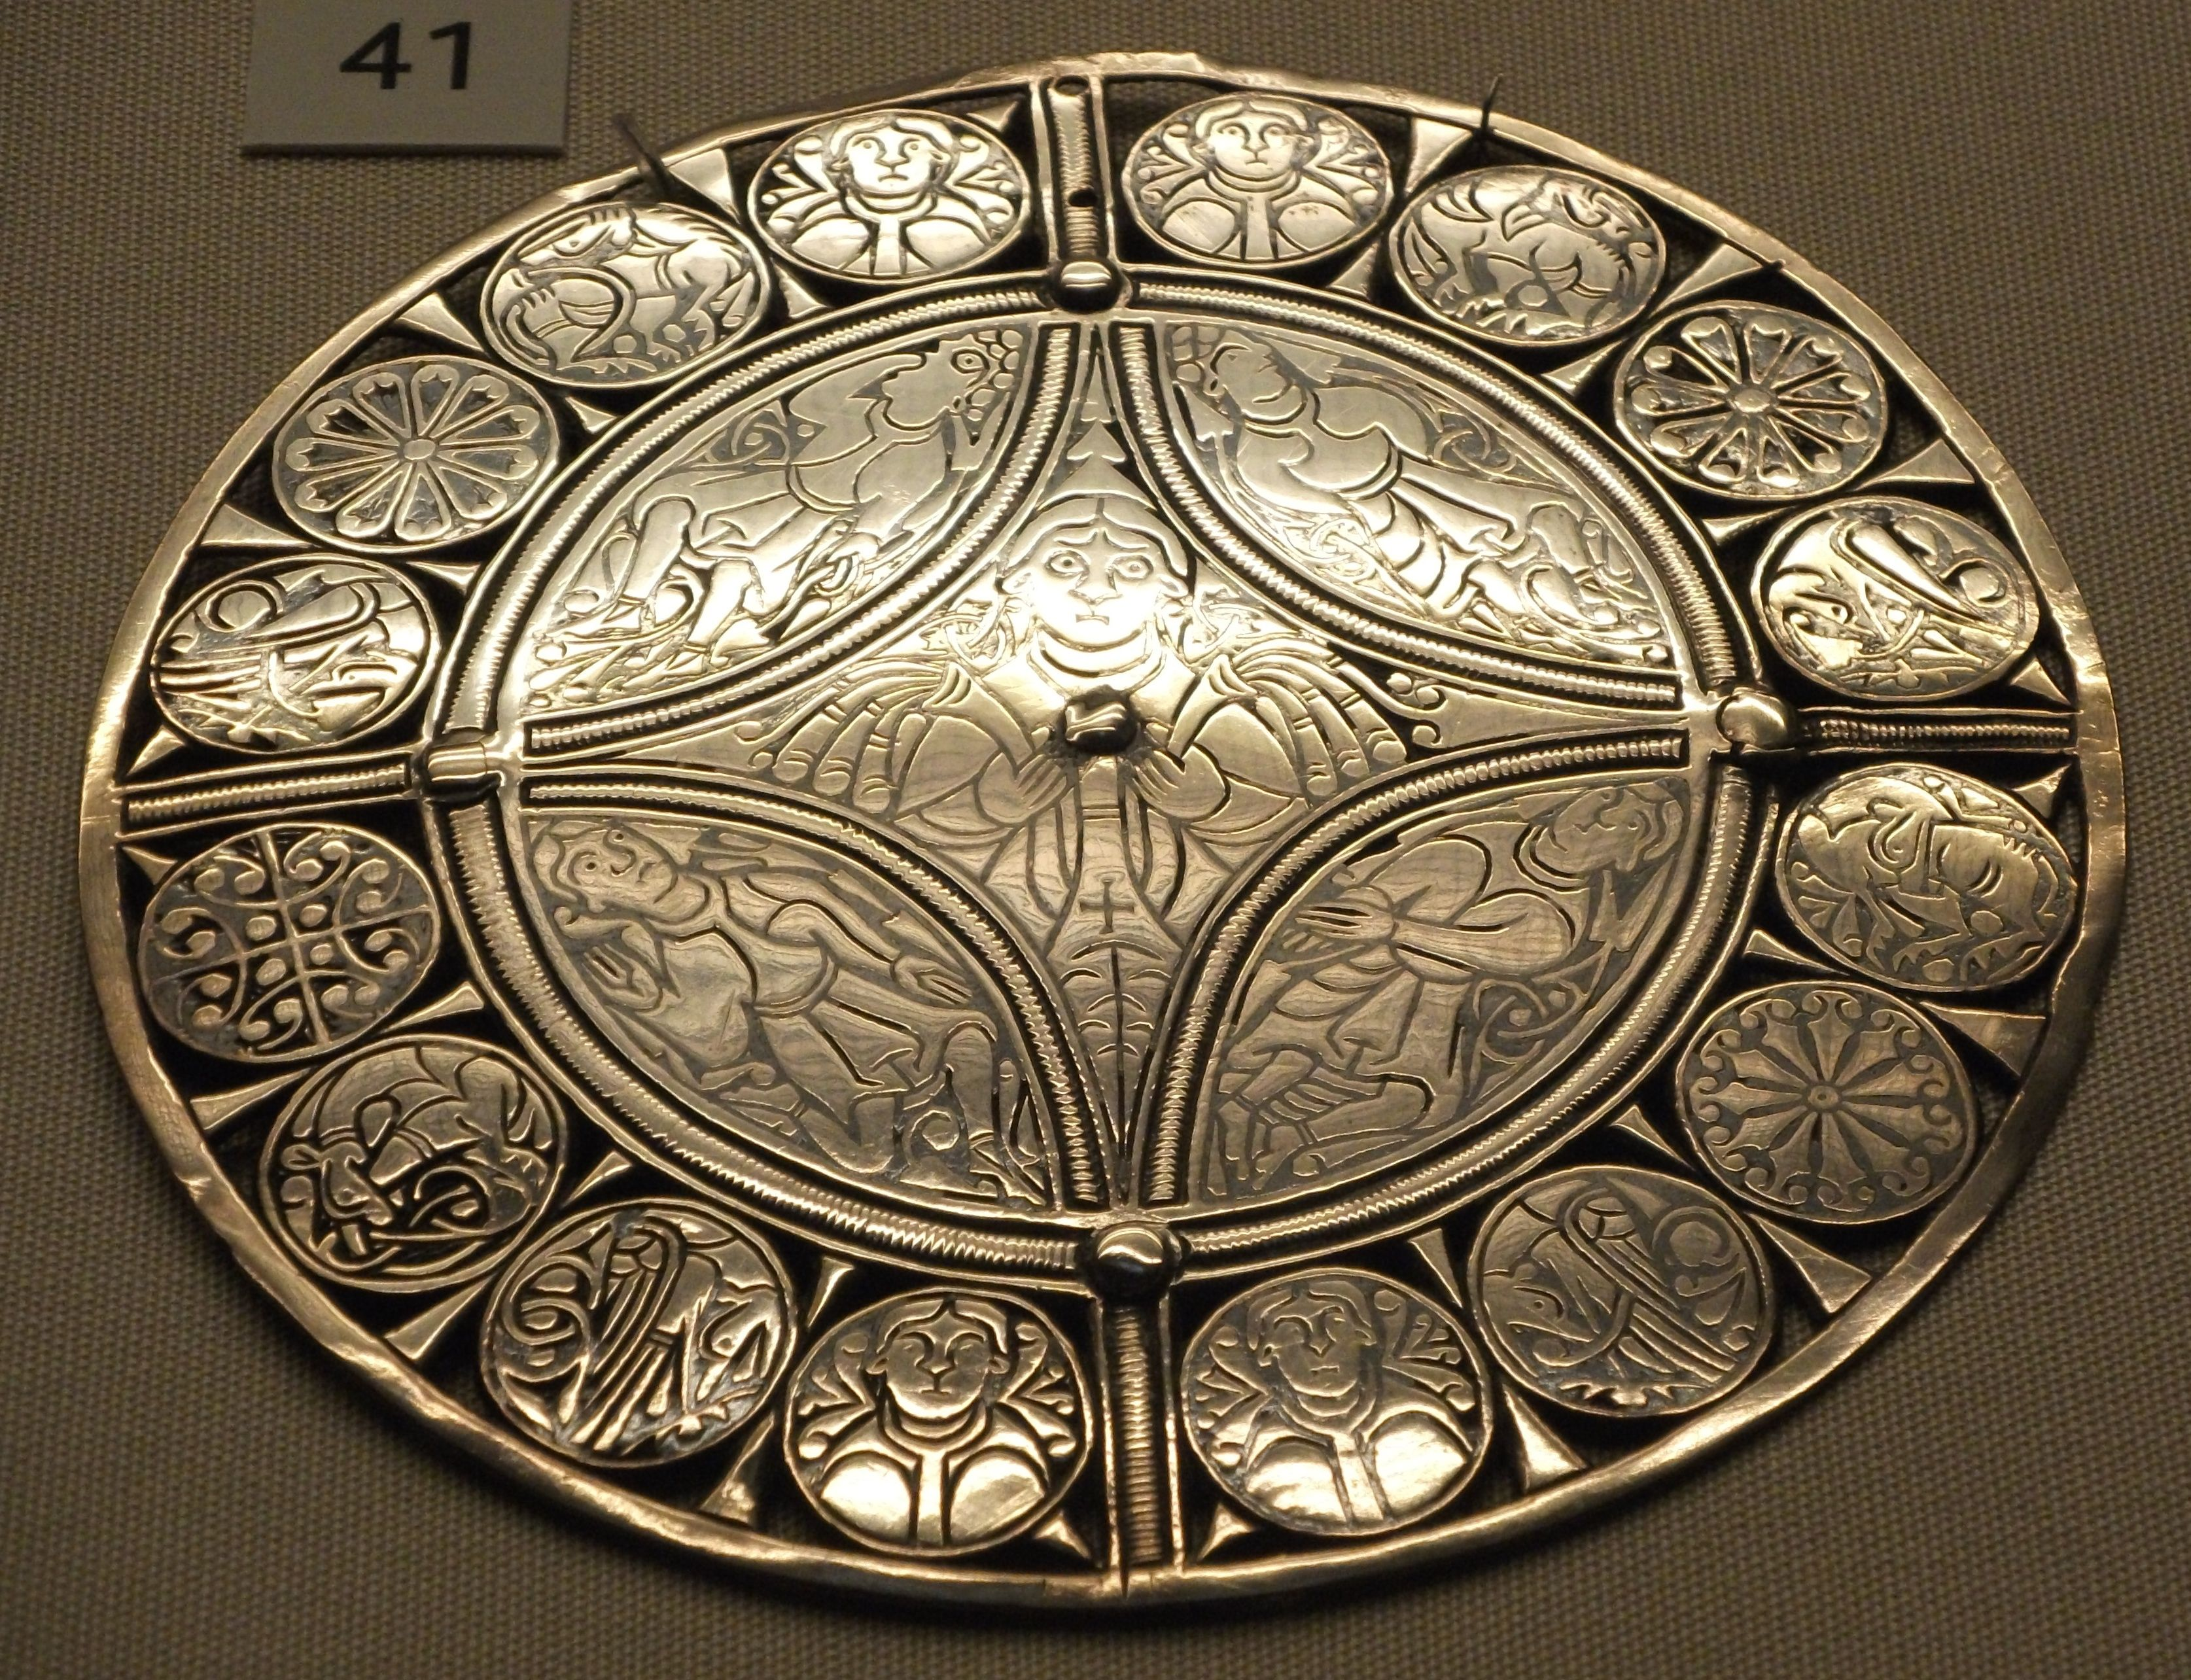 Anglo-Saxon. The Fuller Brooch, British Museum. Late 9th Century AD. Silver and niello. Size: 11.4 cm in diameter. Author: Johnbod.